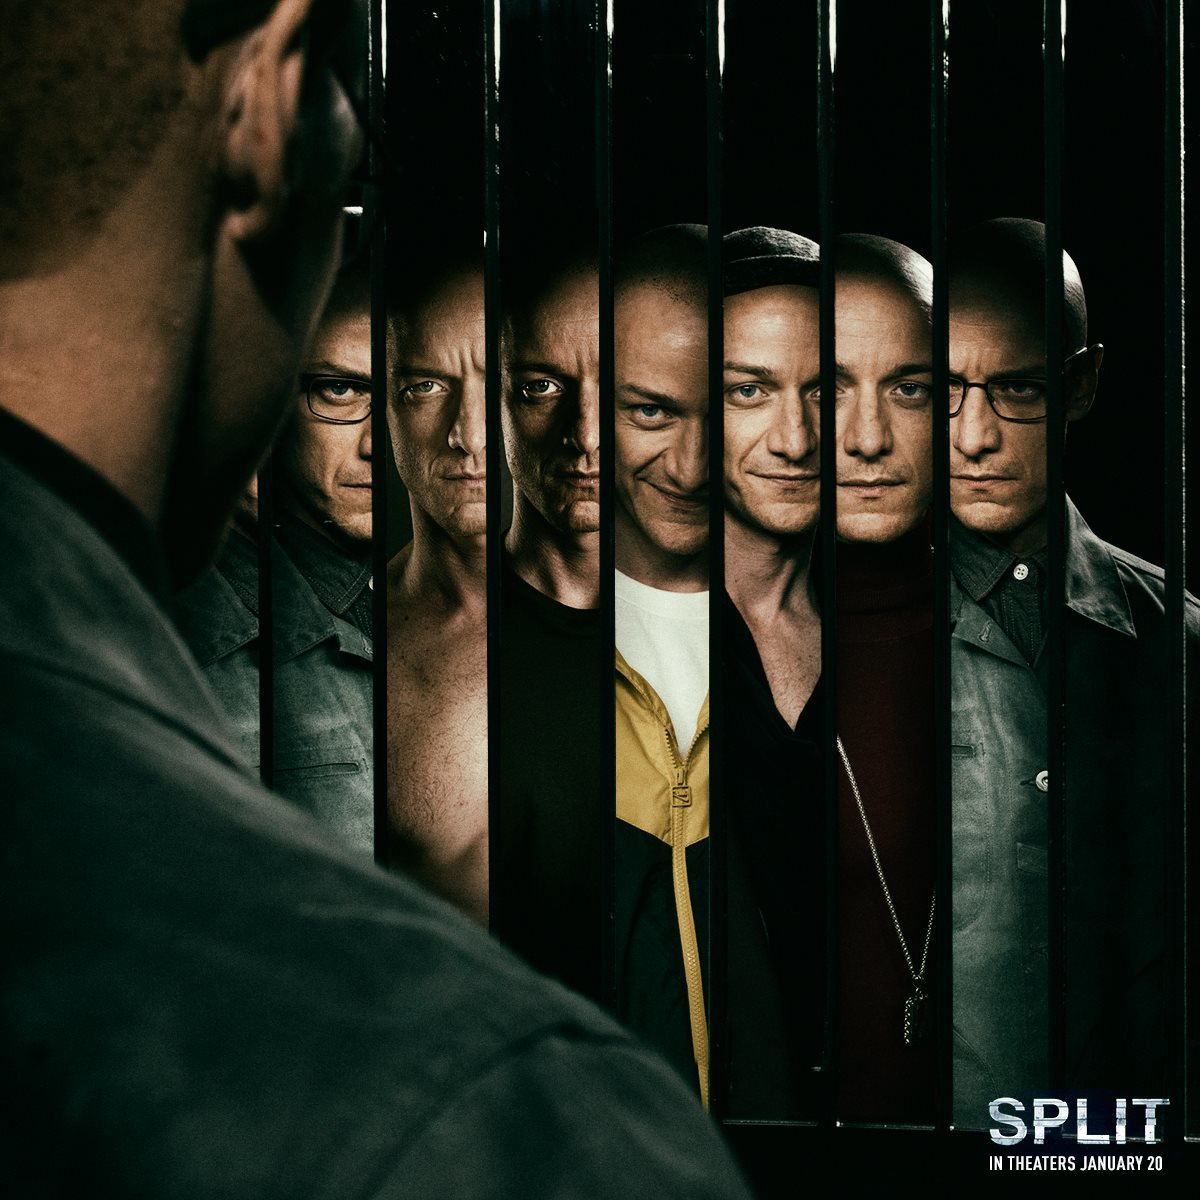 &quot;You are different from the rest. Your heart is pure! Rejoice! The broken are the more evolved. Rejoice.&quot; #Split #InseguendoSogni #21novembre #JamesMcAvoy<br>http://pic.twitter.com/DI3E2qor4P